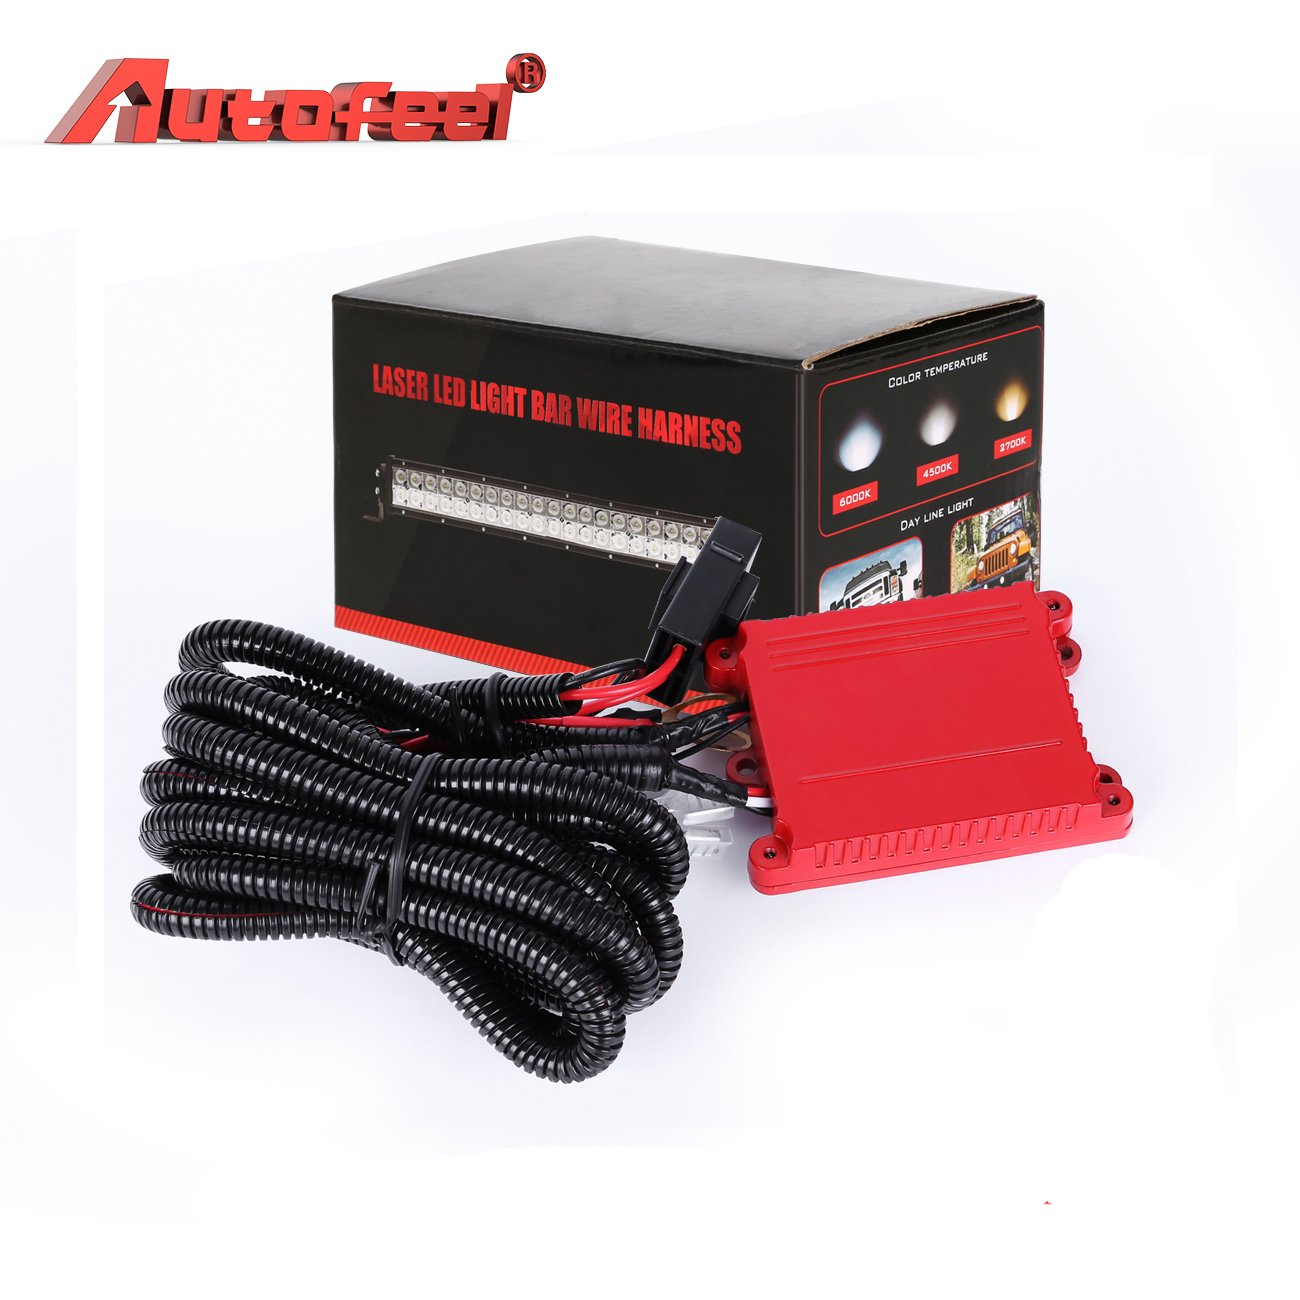 Amazon.com: Wiring Harness Autofeel Remote Control Wiring Harness Kit For  8D Dual-Mode LED Light Bar Universal Fitment Light Bar Accessories:  Automotive